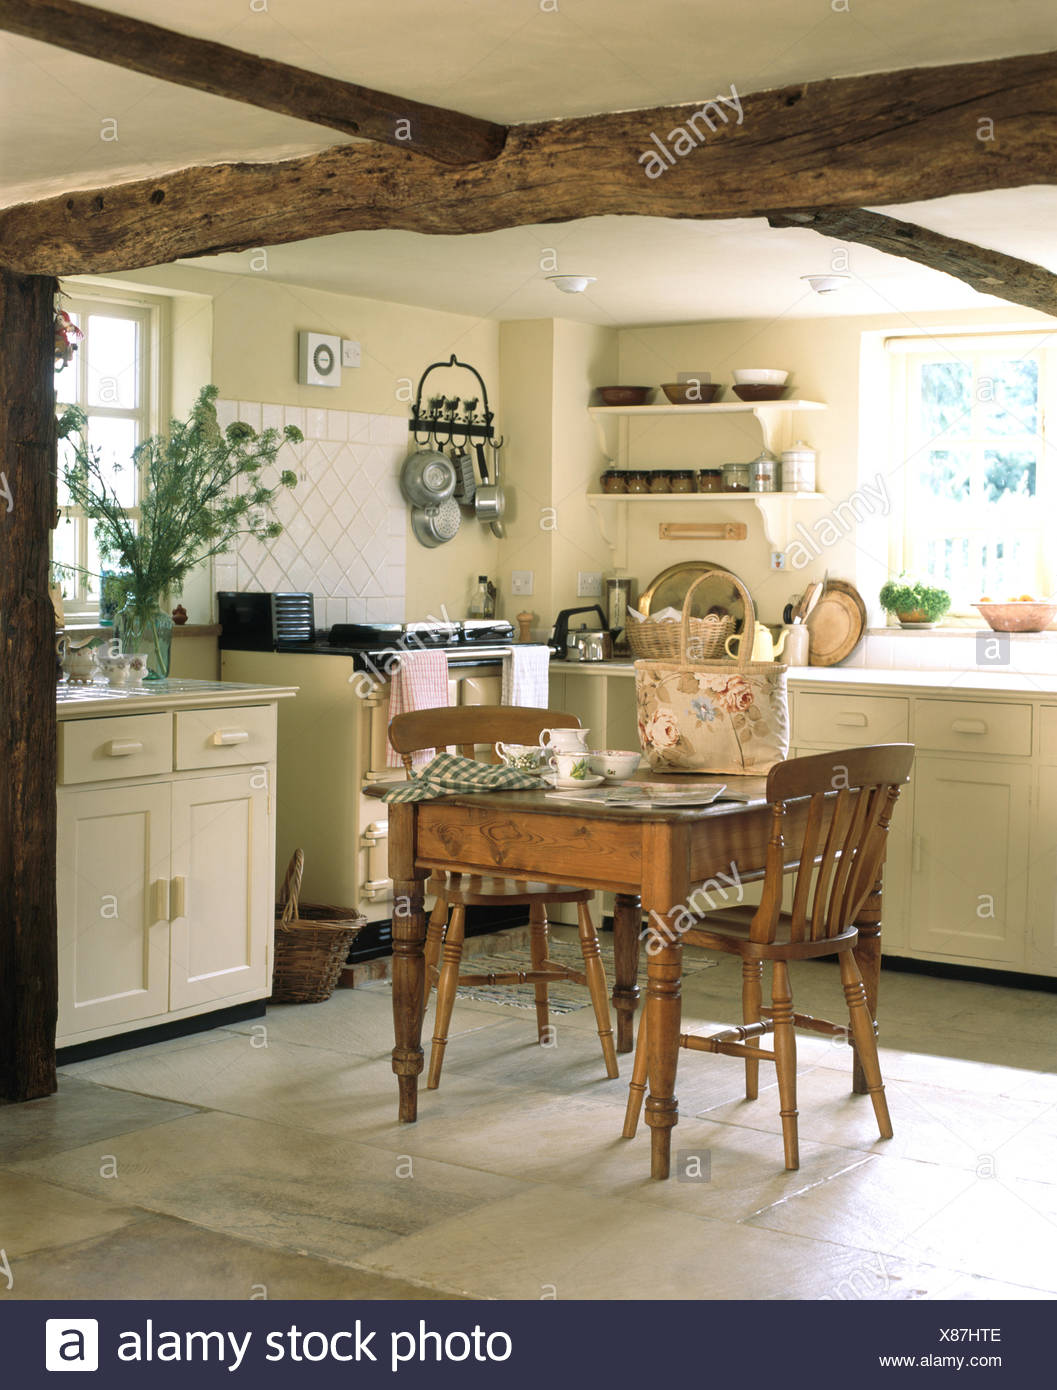 vintage pine dining table and chairs in a cream cottage kitchen with